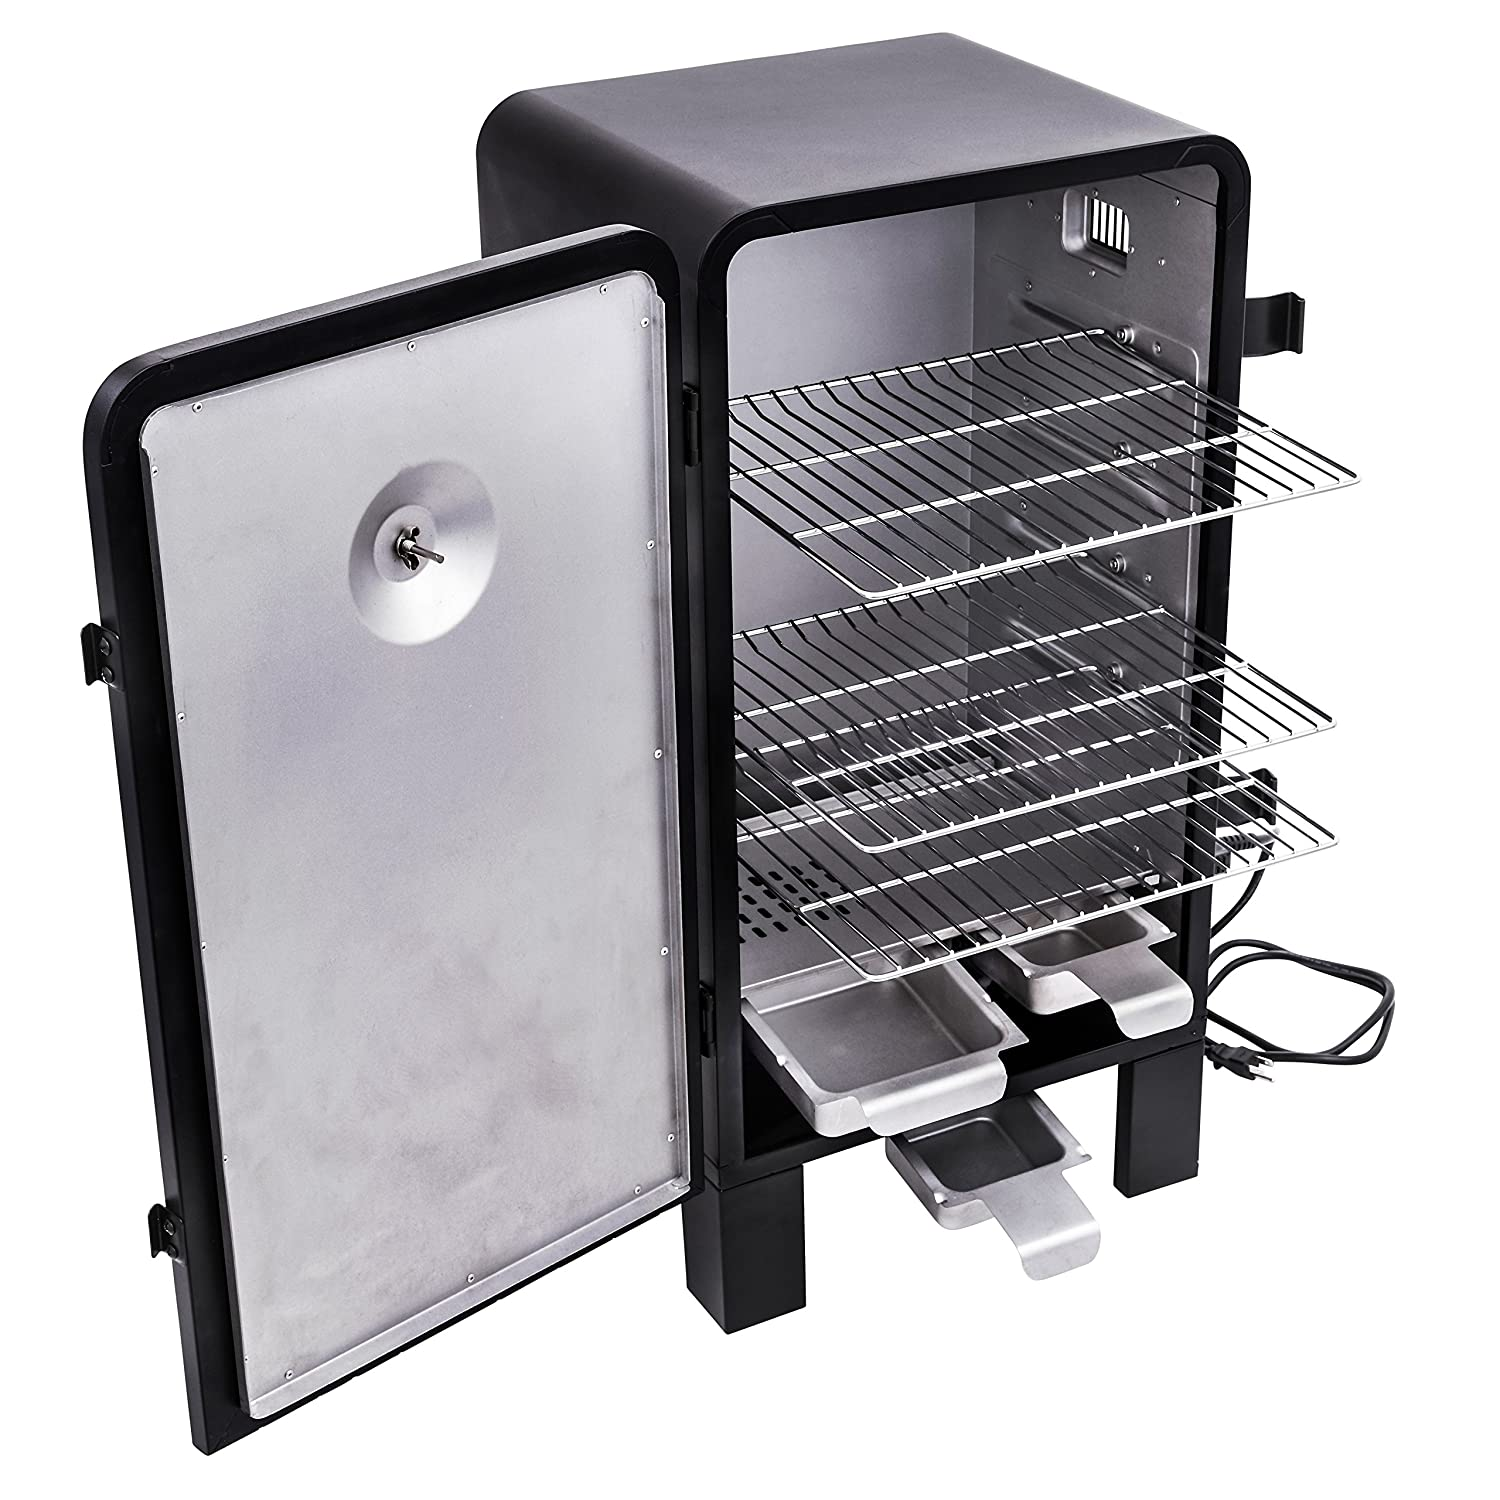 Char-Broil Analog – Best electric smoker for beginners